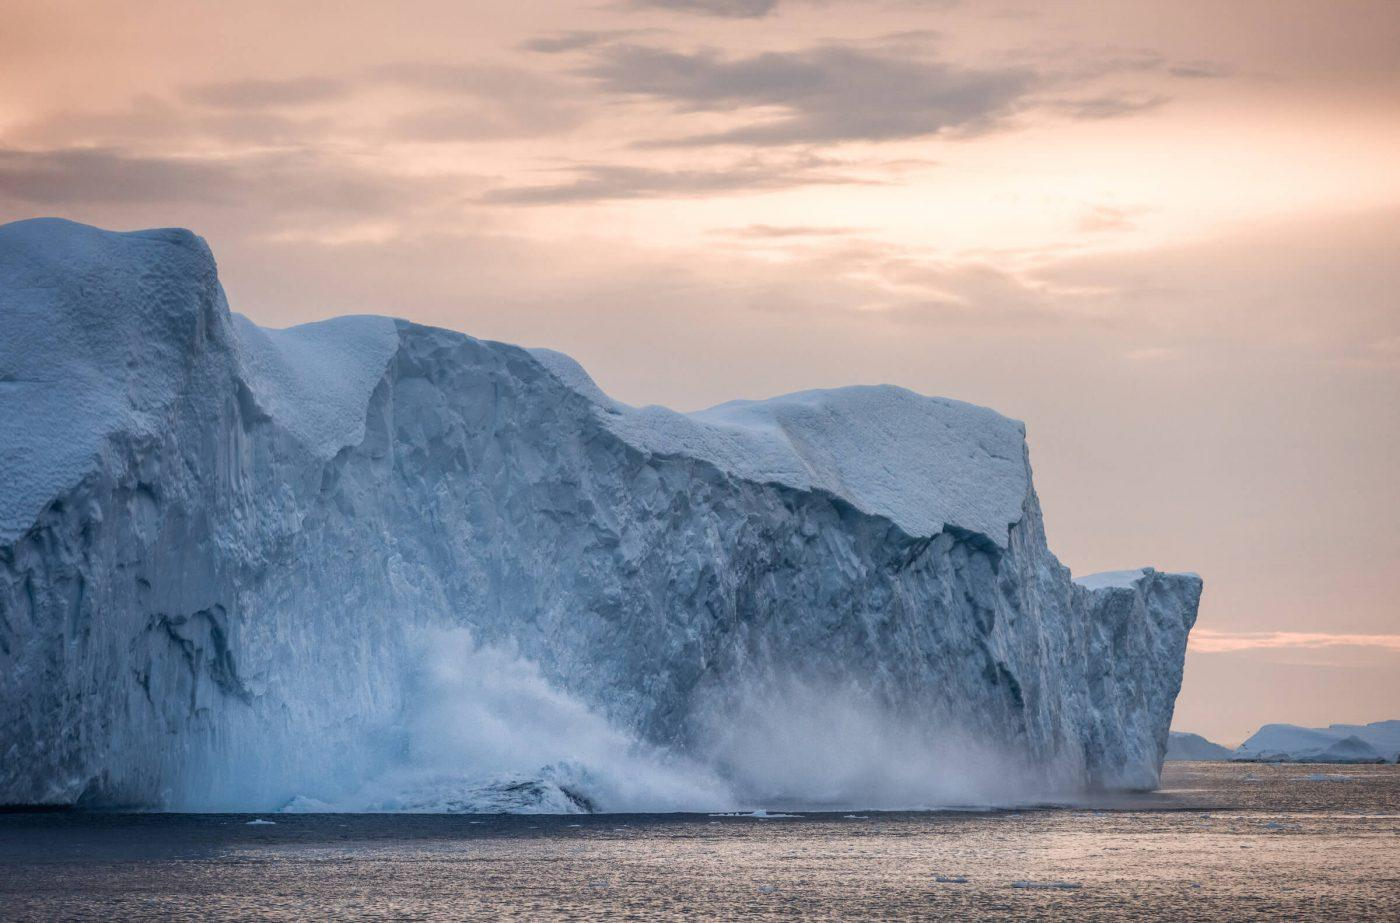 I was fortunate to be at the right place at the right time on two occassions with regards to photographing a calving iceberg in the Ilulissat Icefjord. An amazing experience. Photo by Stian klo